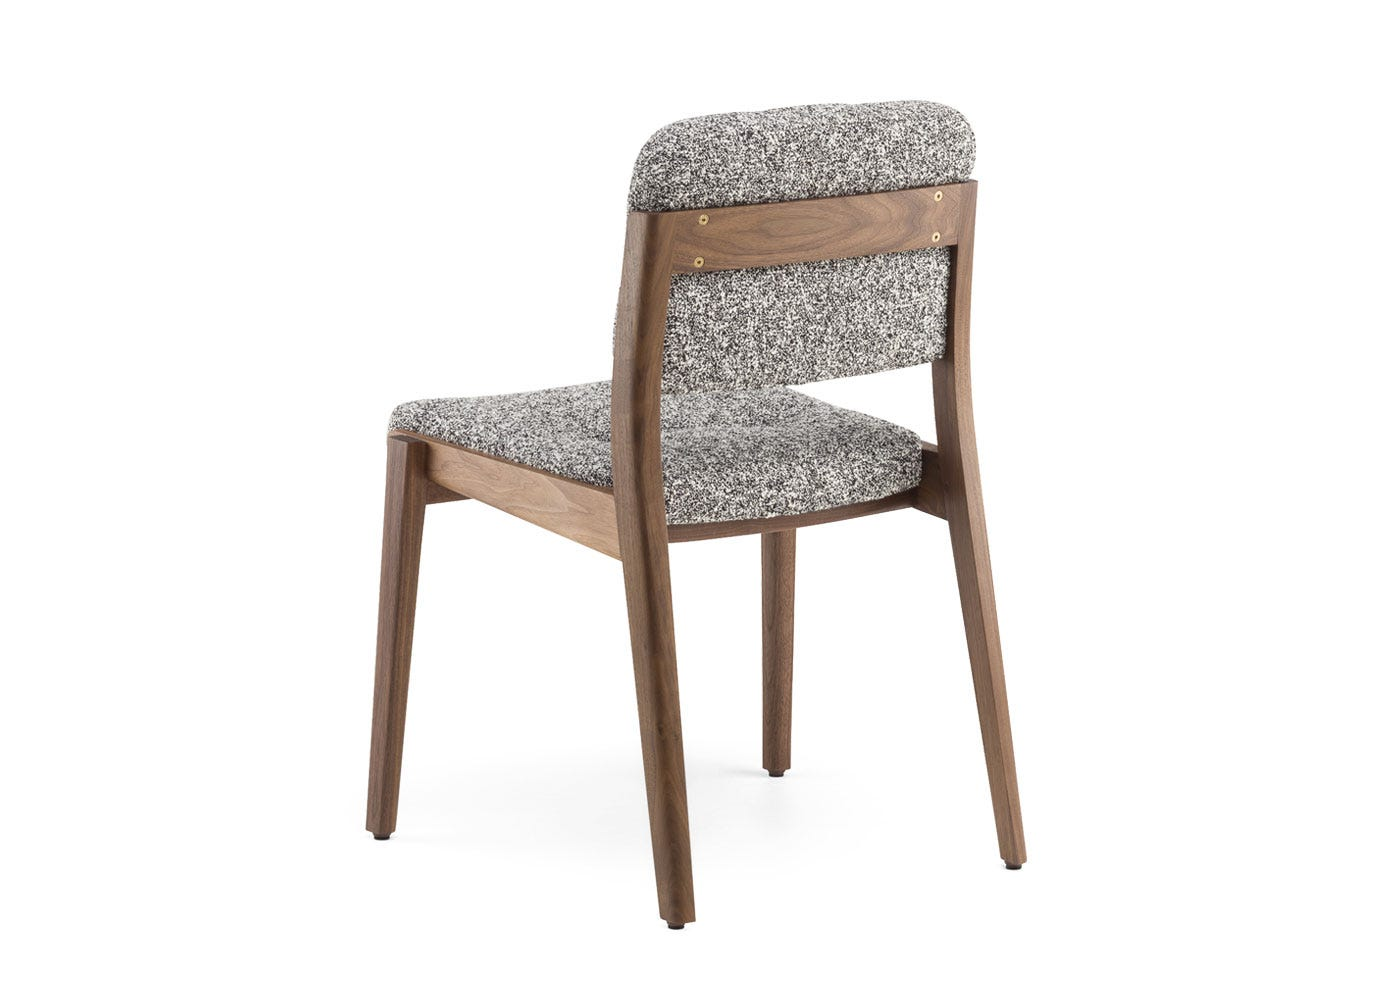 As shown: Capo dining chair danish oiled walnut frame with zero 004 seat pad - Rear profile.